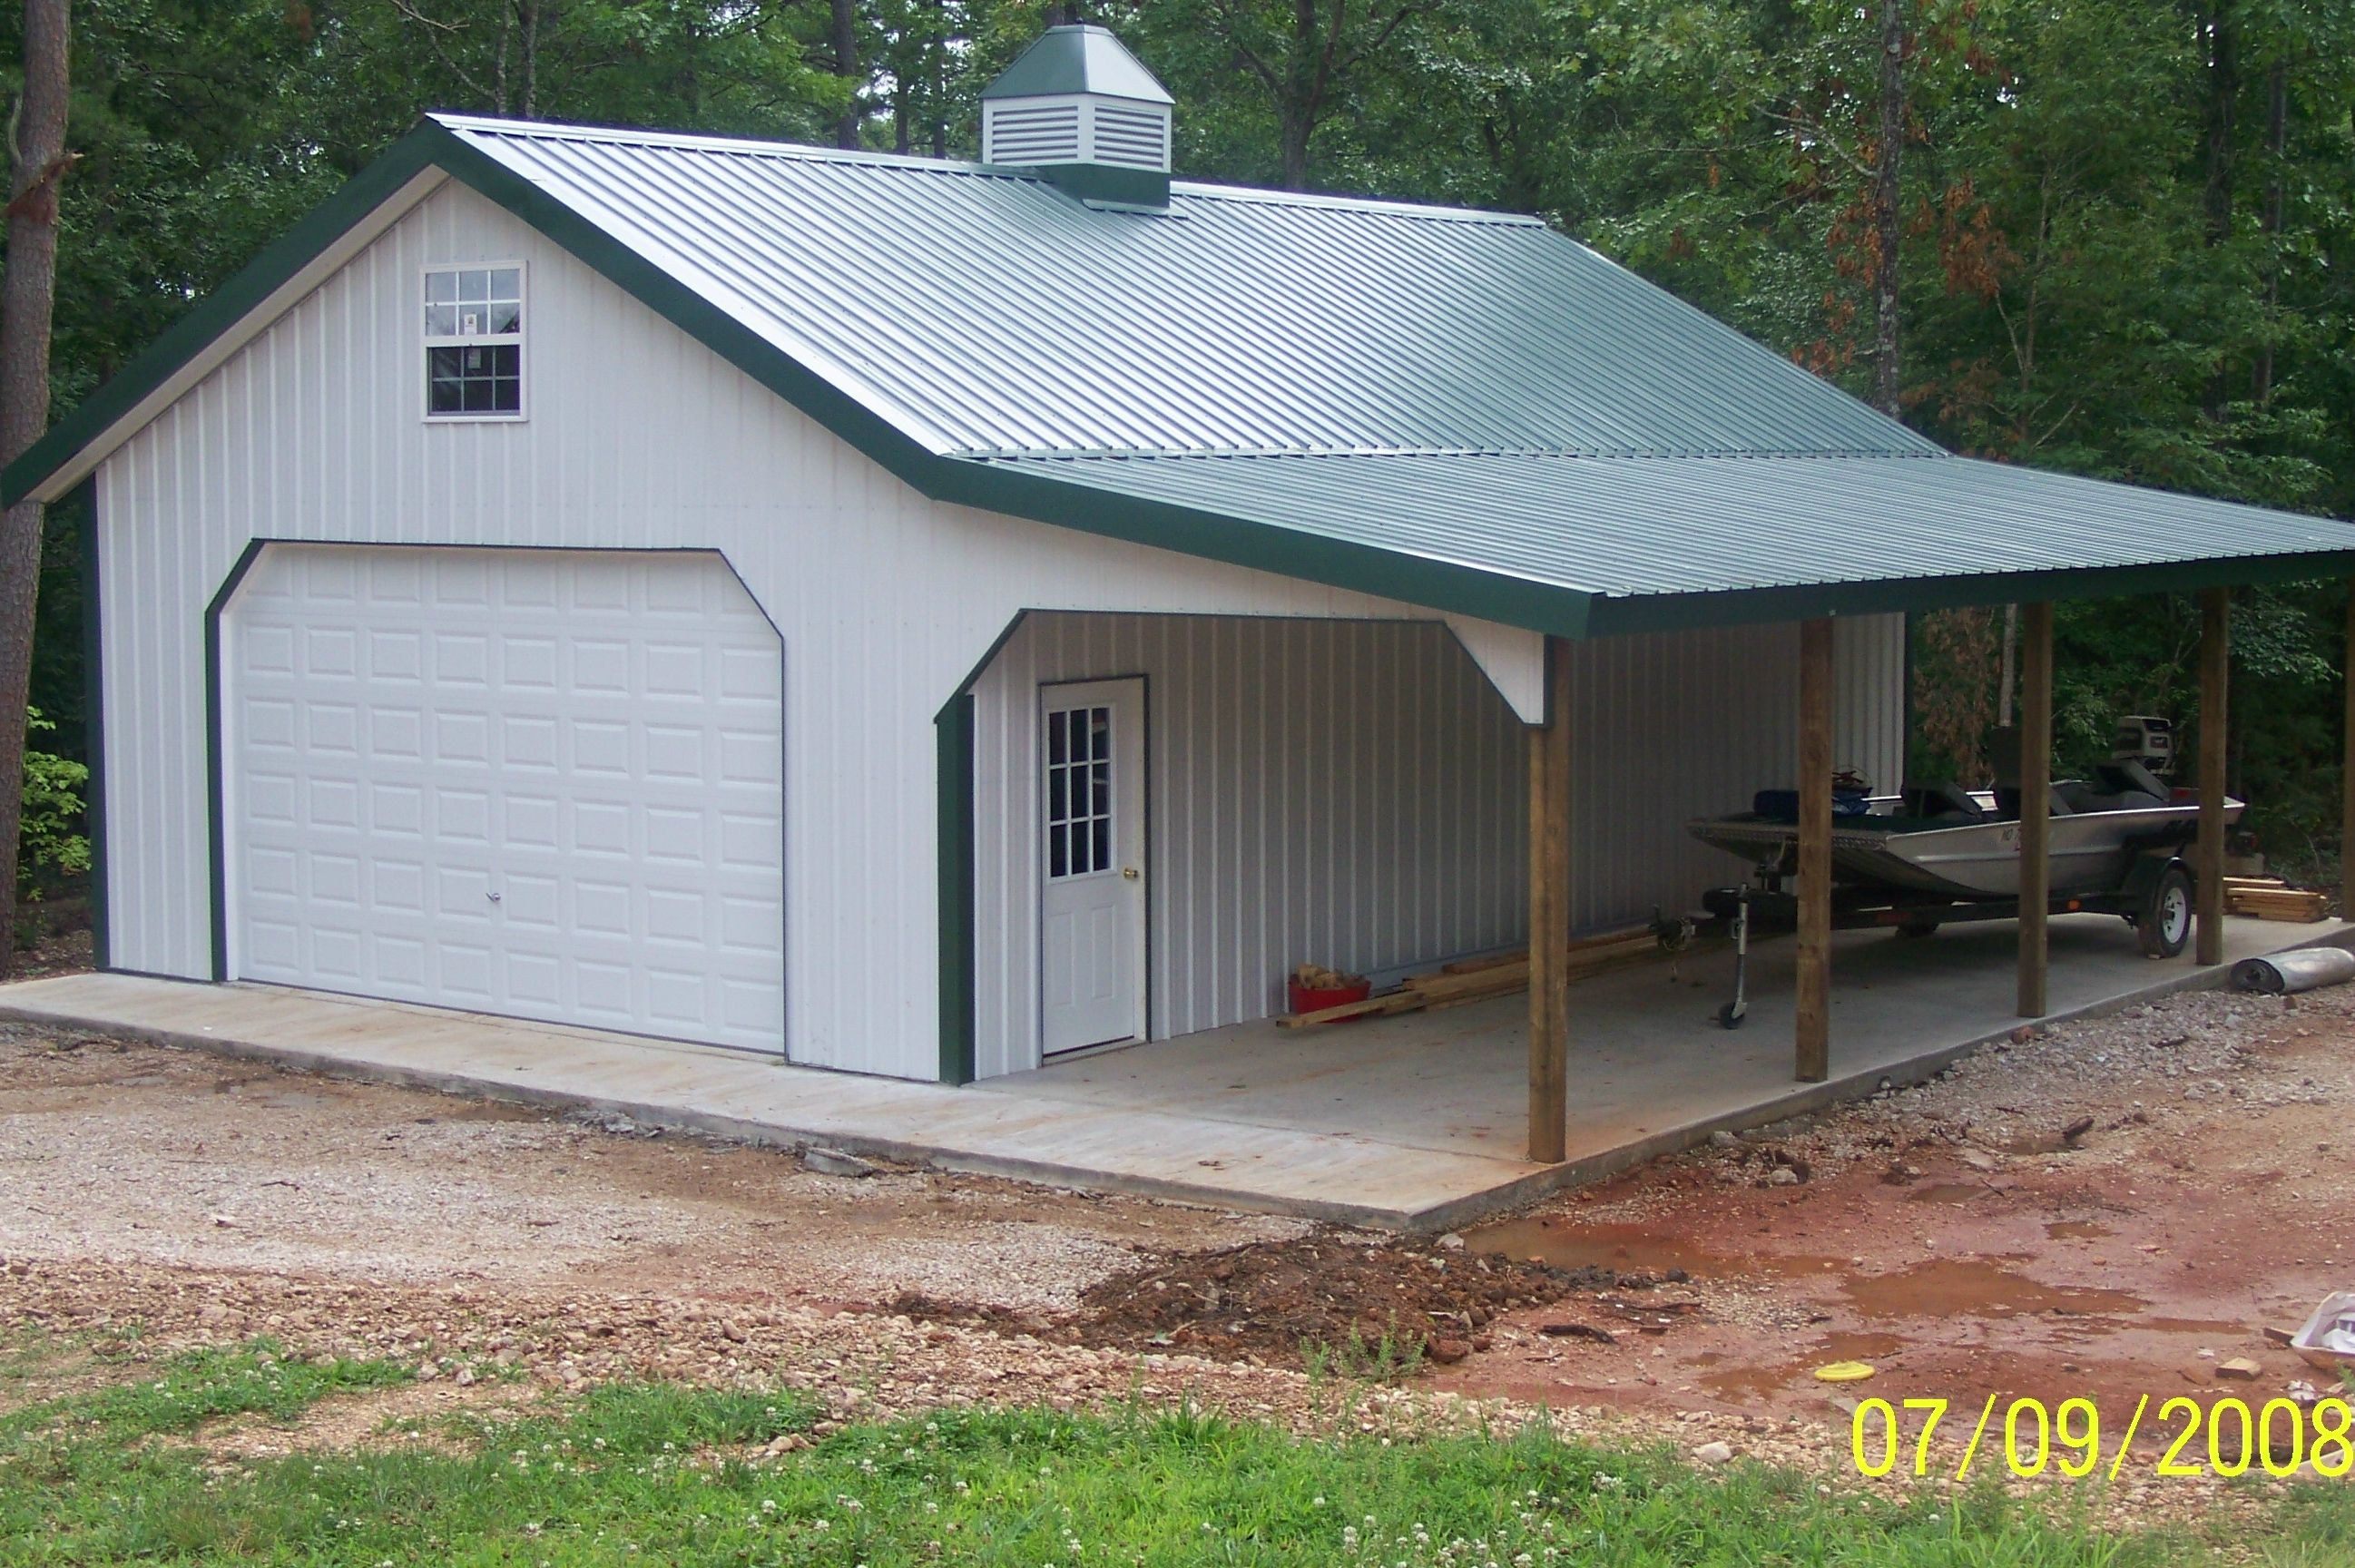 Garage plans 58 garage plans and free diy building for 32x48 pole barn